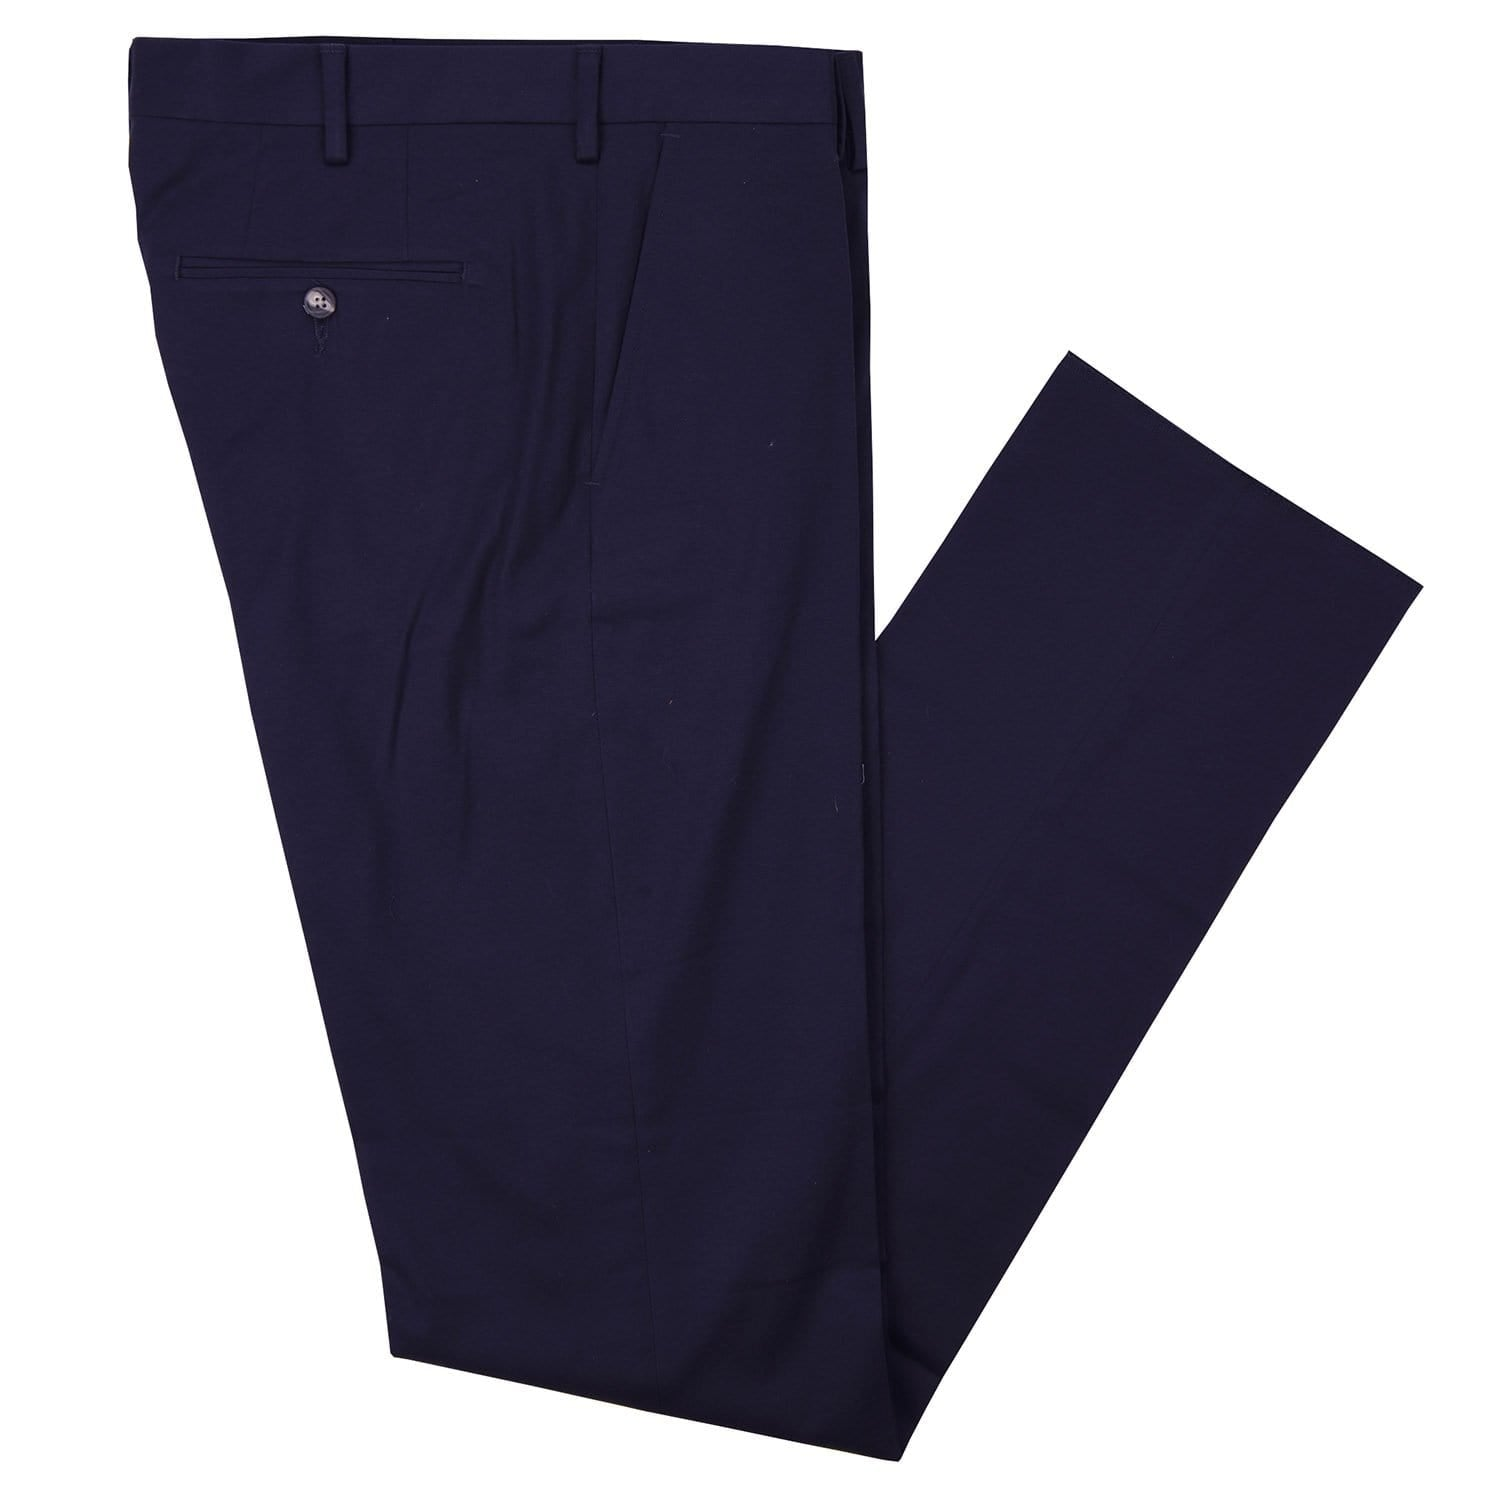 Aubrey Navy Cotton Stretch Poplin Pant